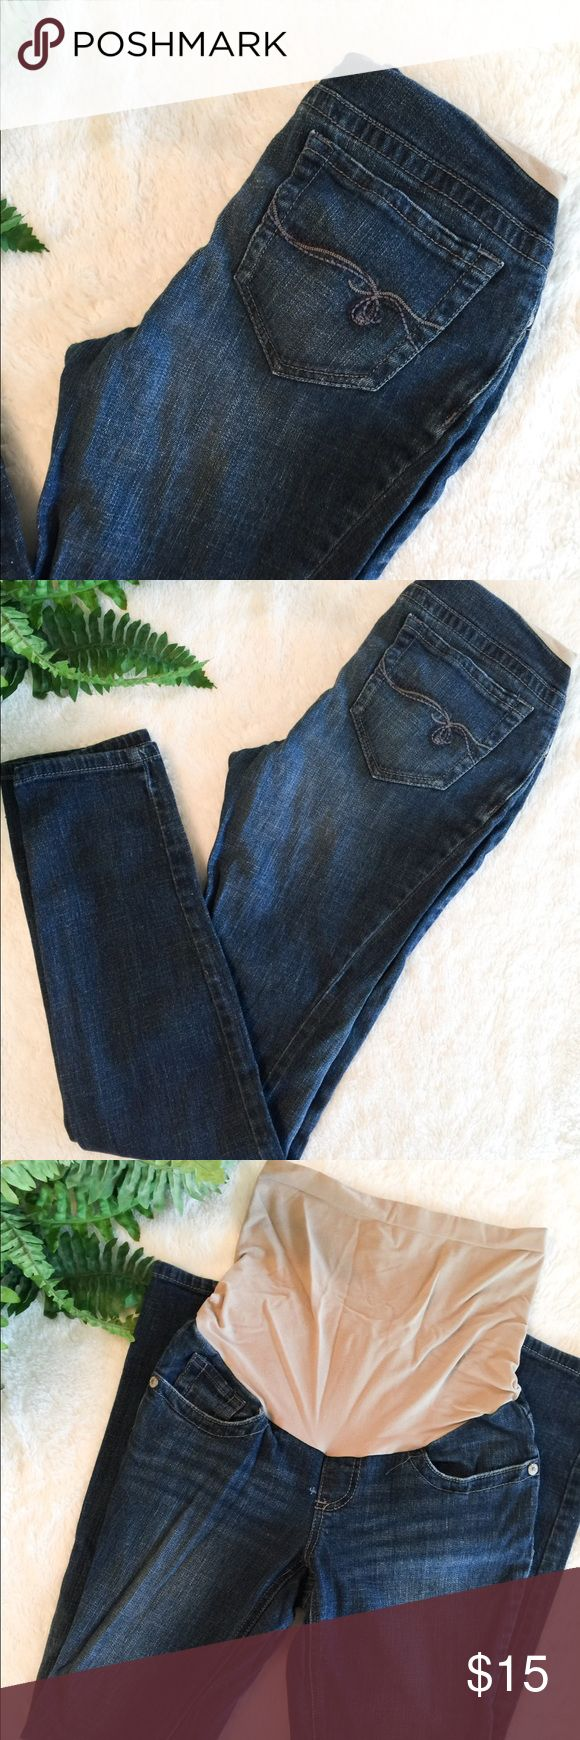 Indigo Blue Maternity Skinny Jeans XS I loved wearing skinny jeans during my pregnancies! Great for boots. 👌🏼 In nice used condition. Maternity band for comfort. They do have some stretch. Inseam: 29"